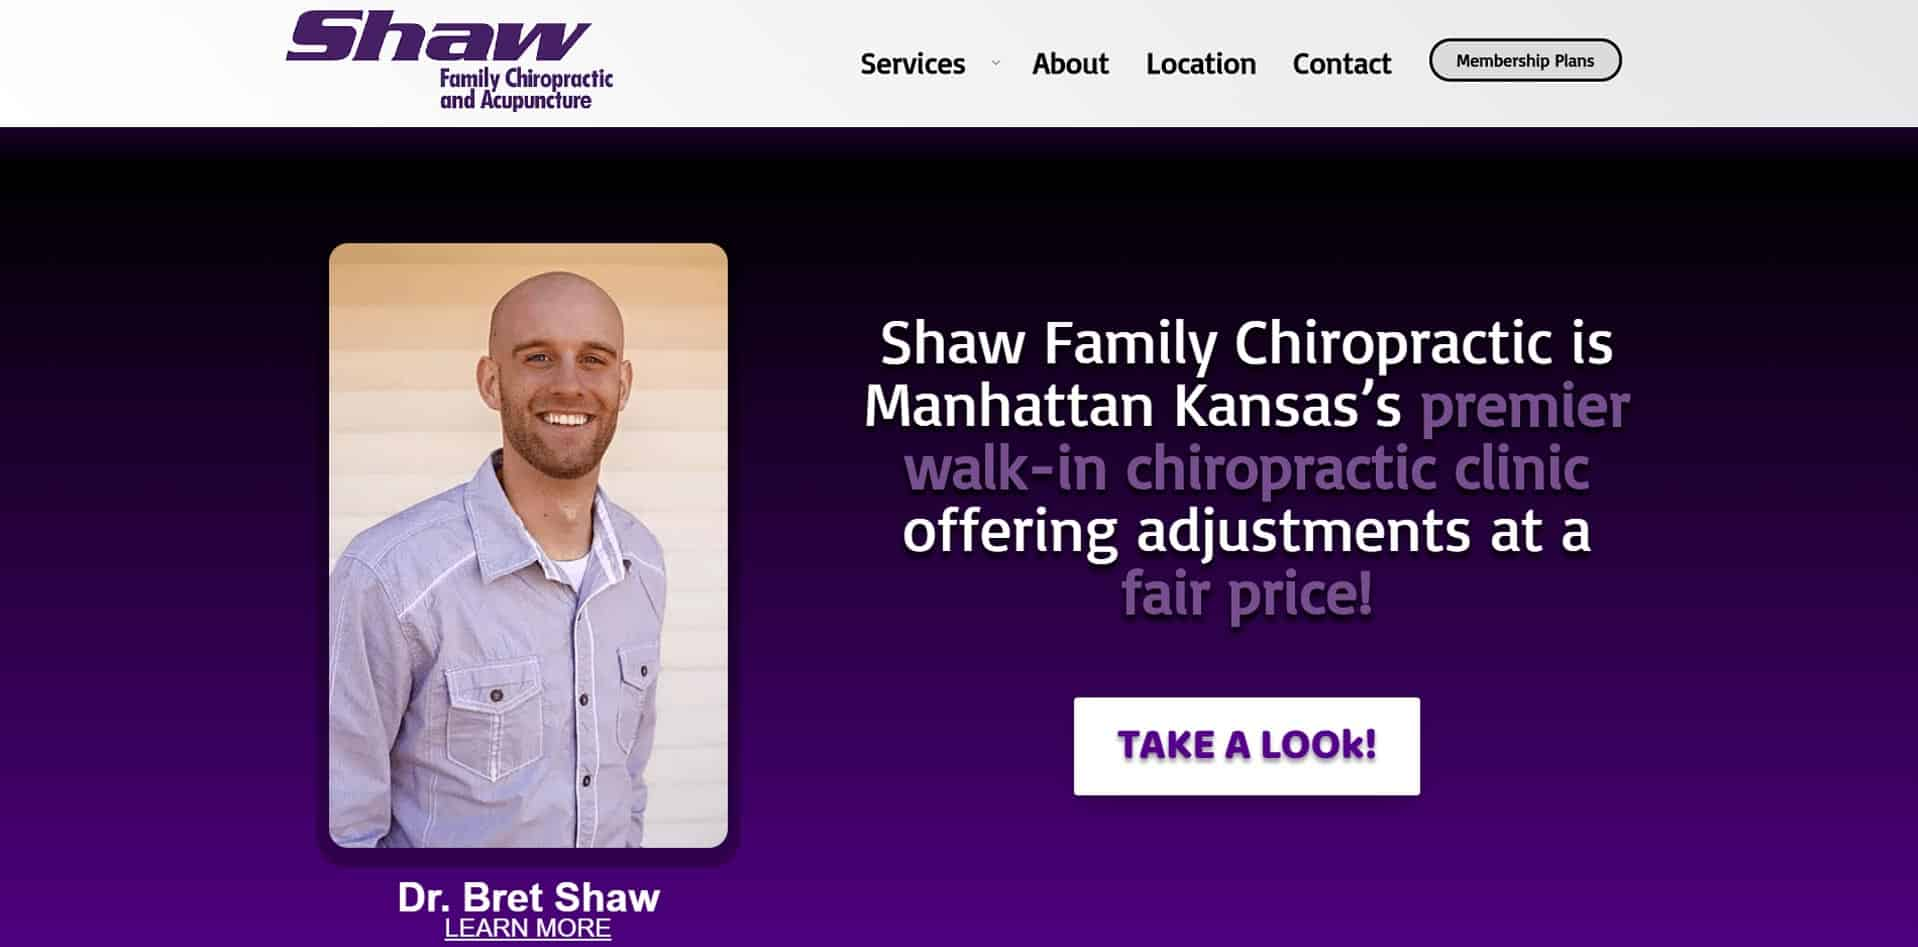 Shaw Family Chiropractic - Manhattan KS Web Design with MKS